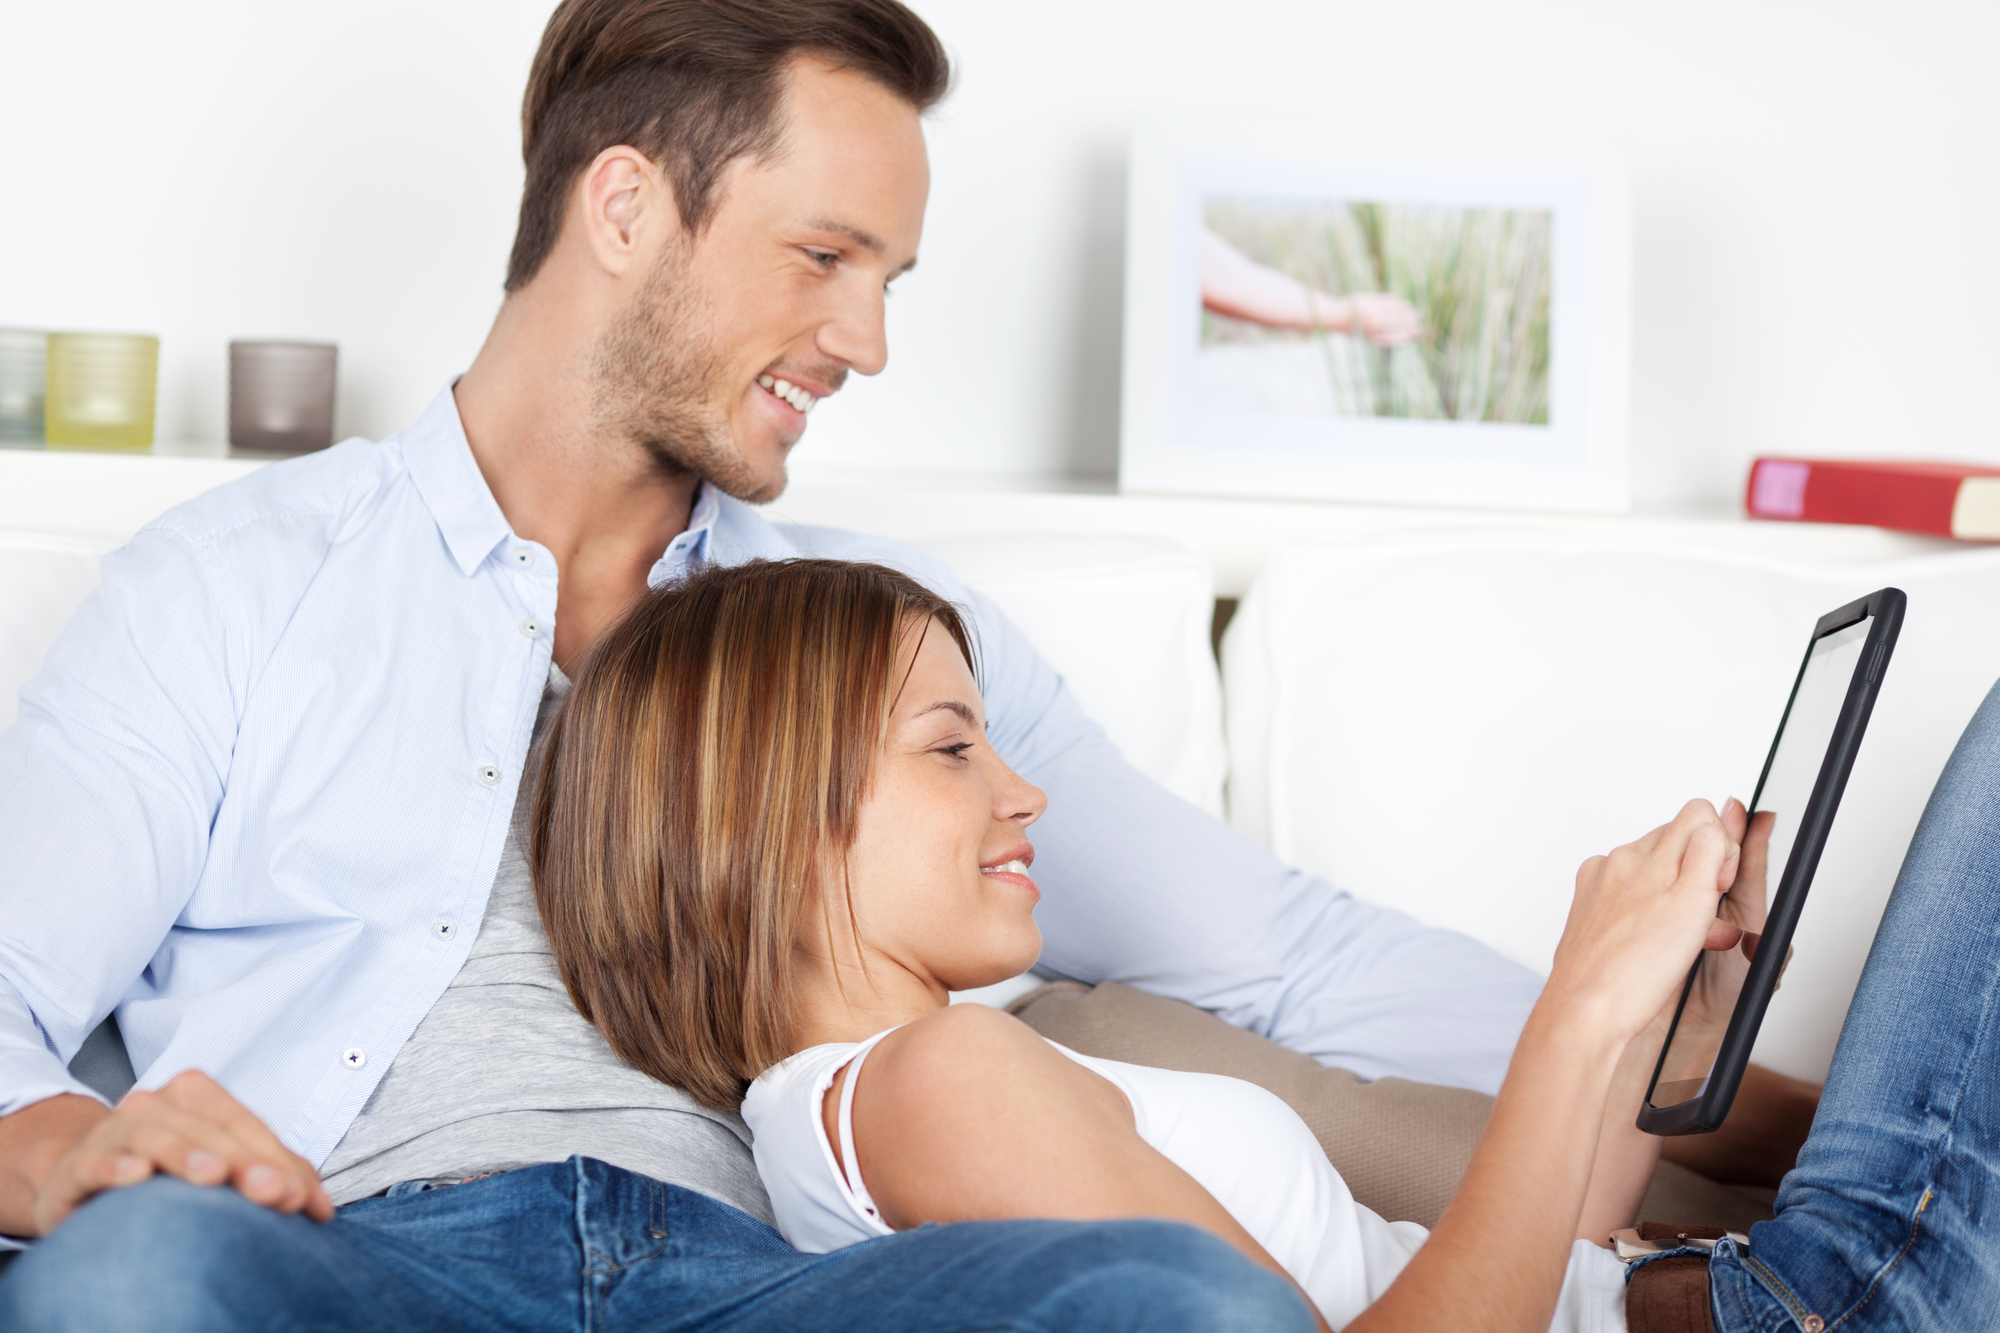 Simple Ways to Show Your Husband He's a Priority